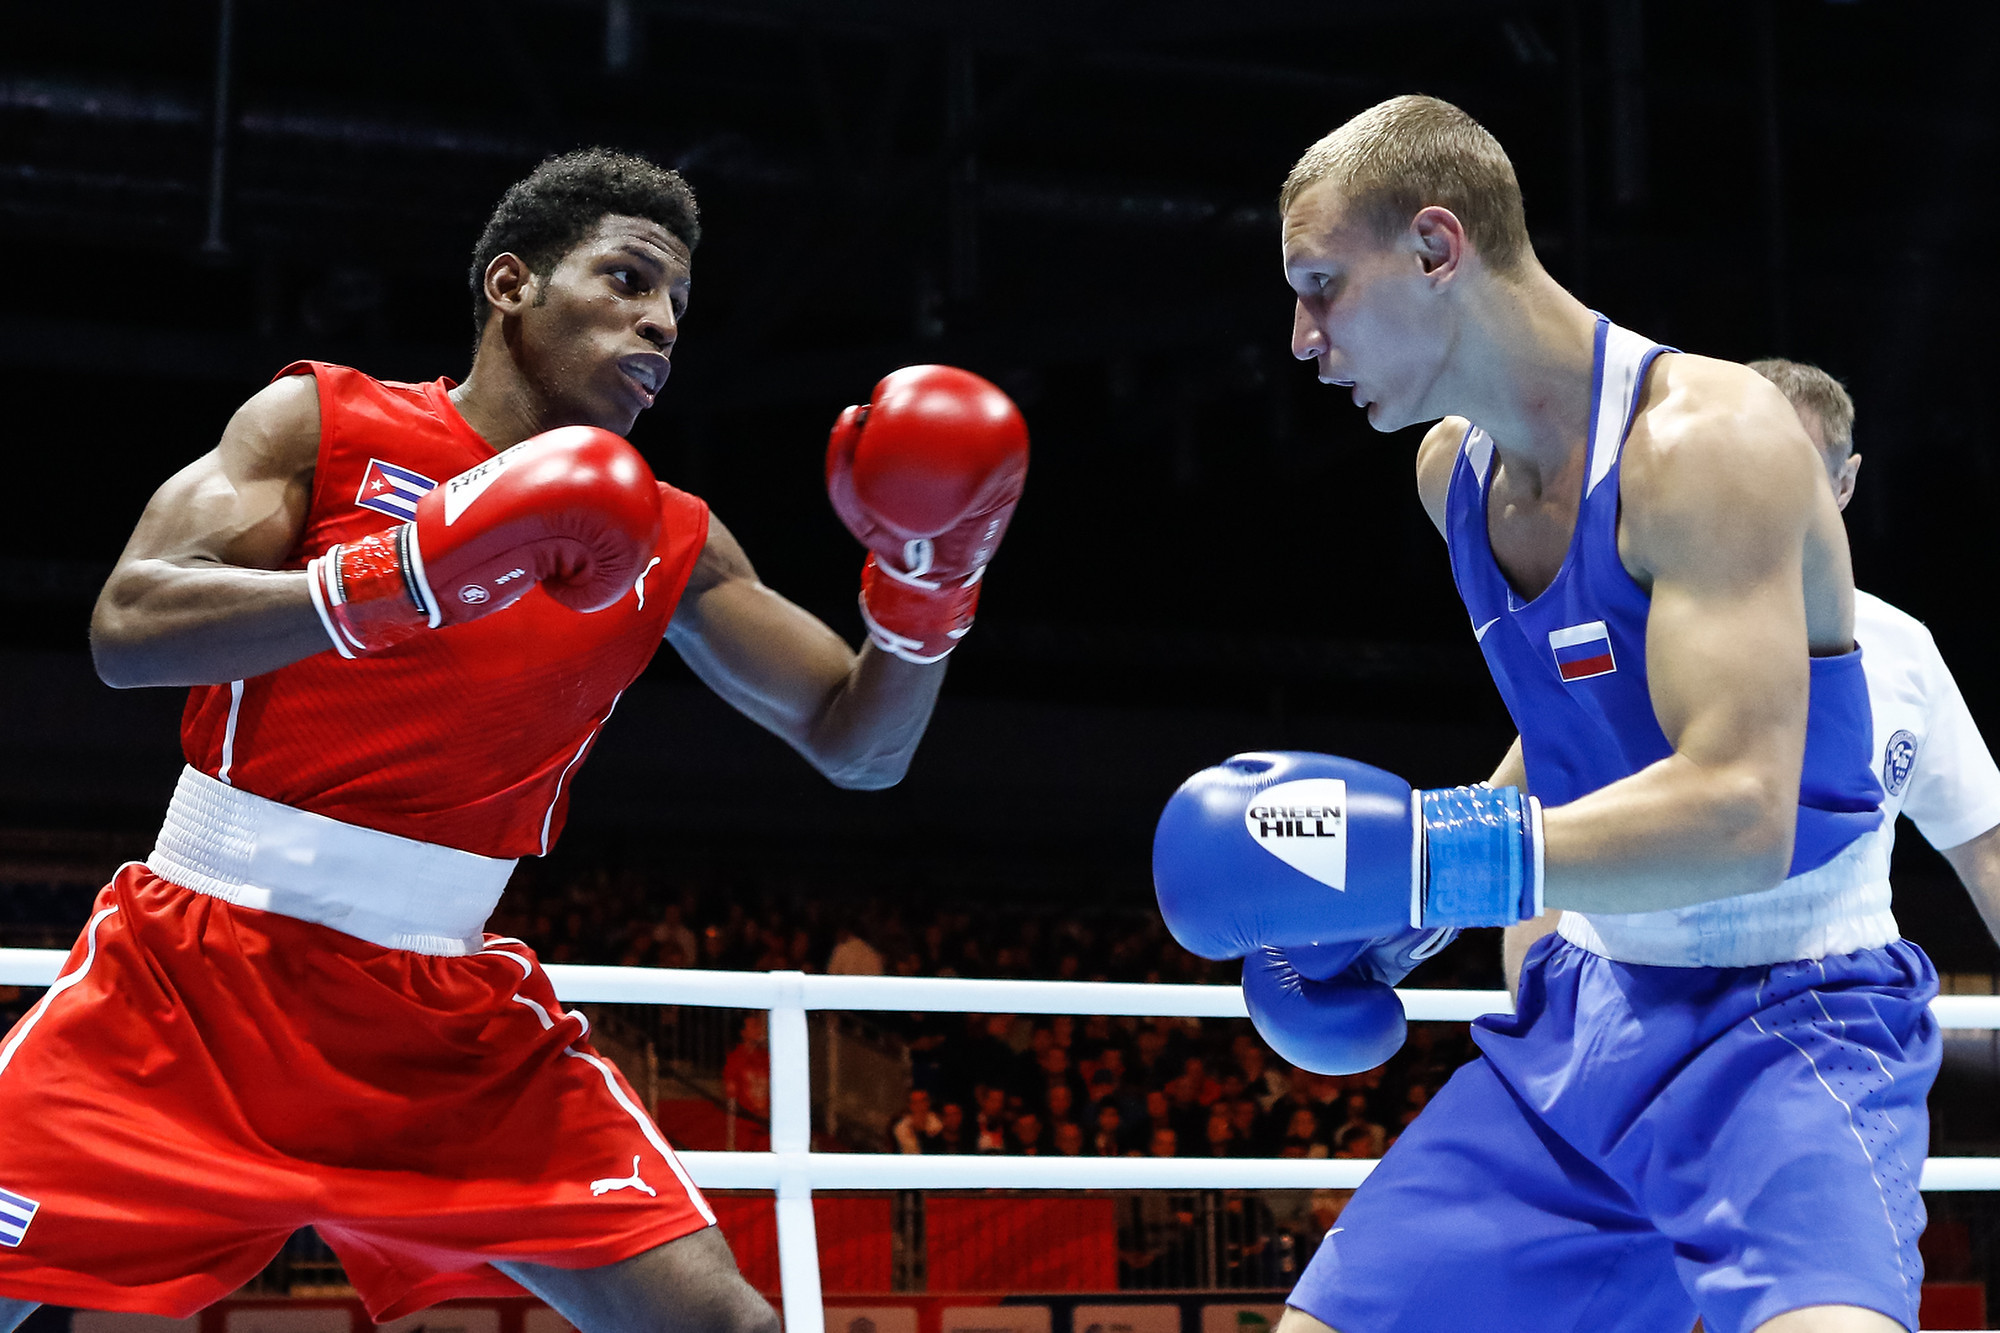 Ilia Popov was unable to replicate the feat of his compatriot Bakshi, losing unanimously to Cuba's Andy Cruz in the light welterweight division ©Yekateriburg 2019